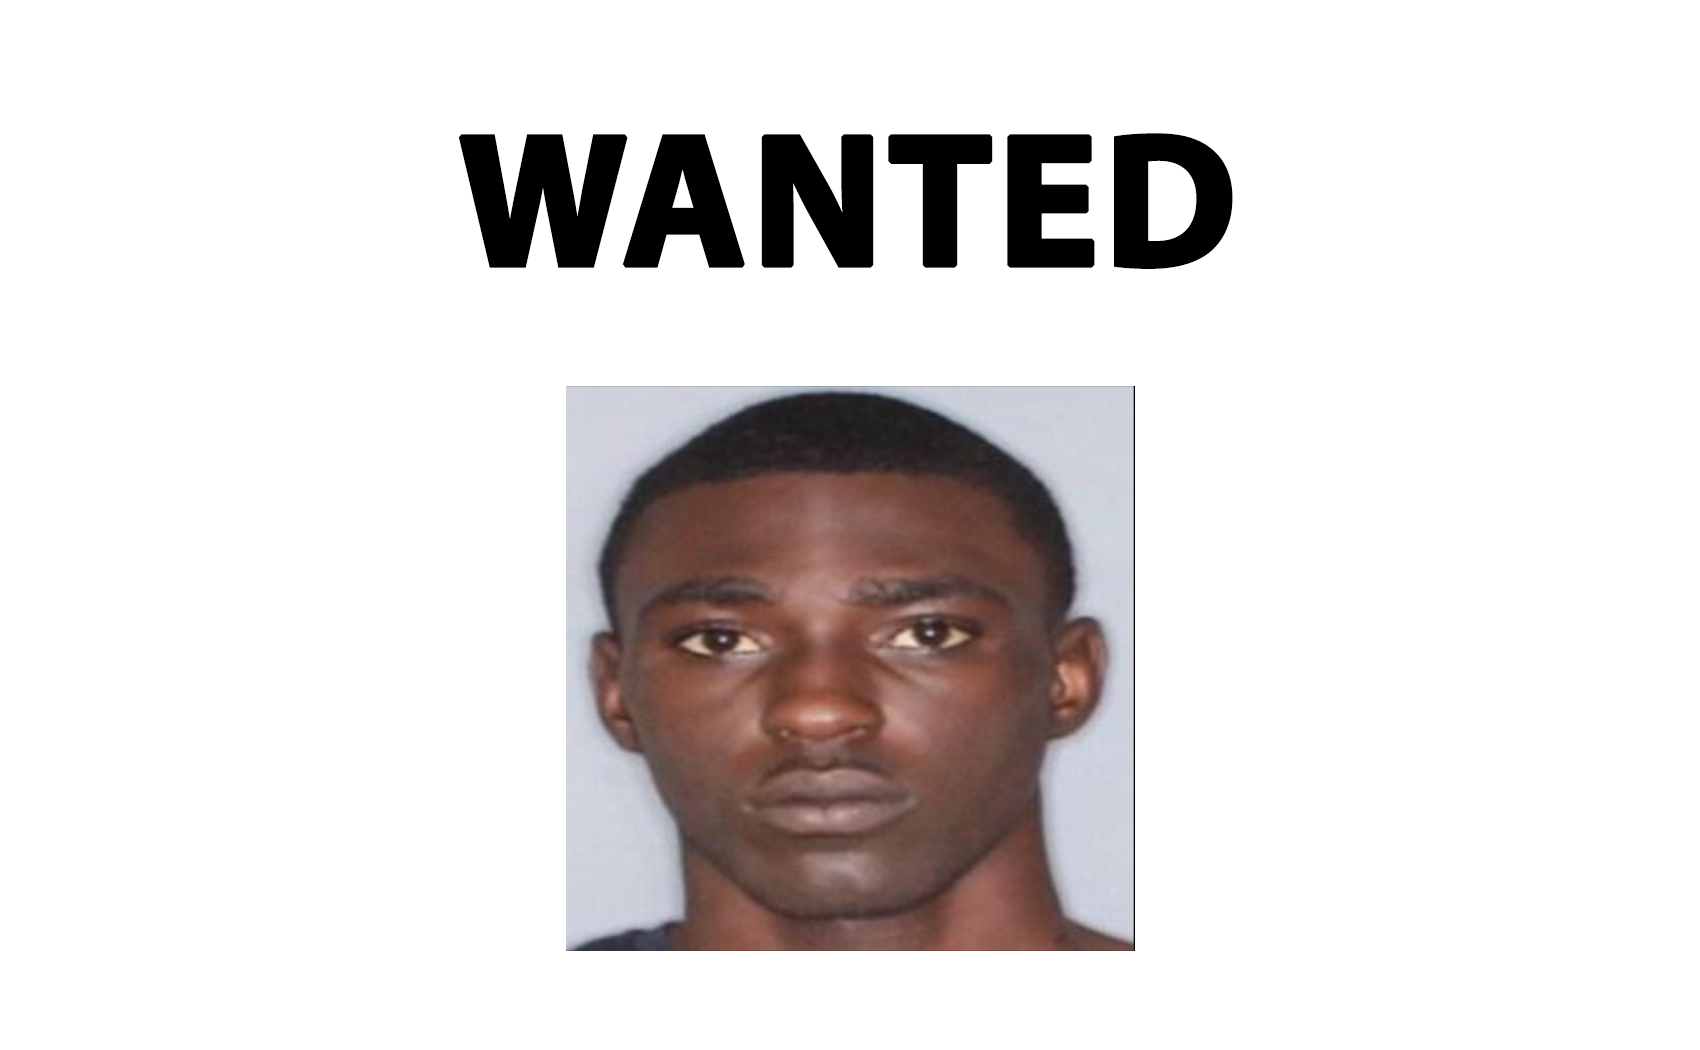 Wanted for questioning